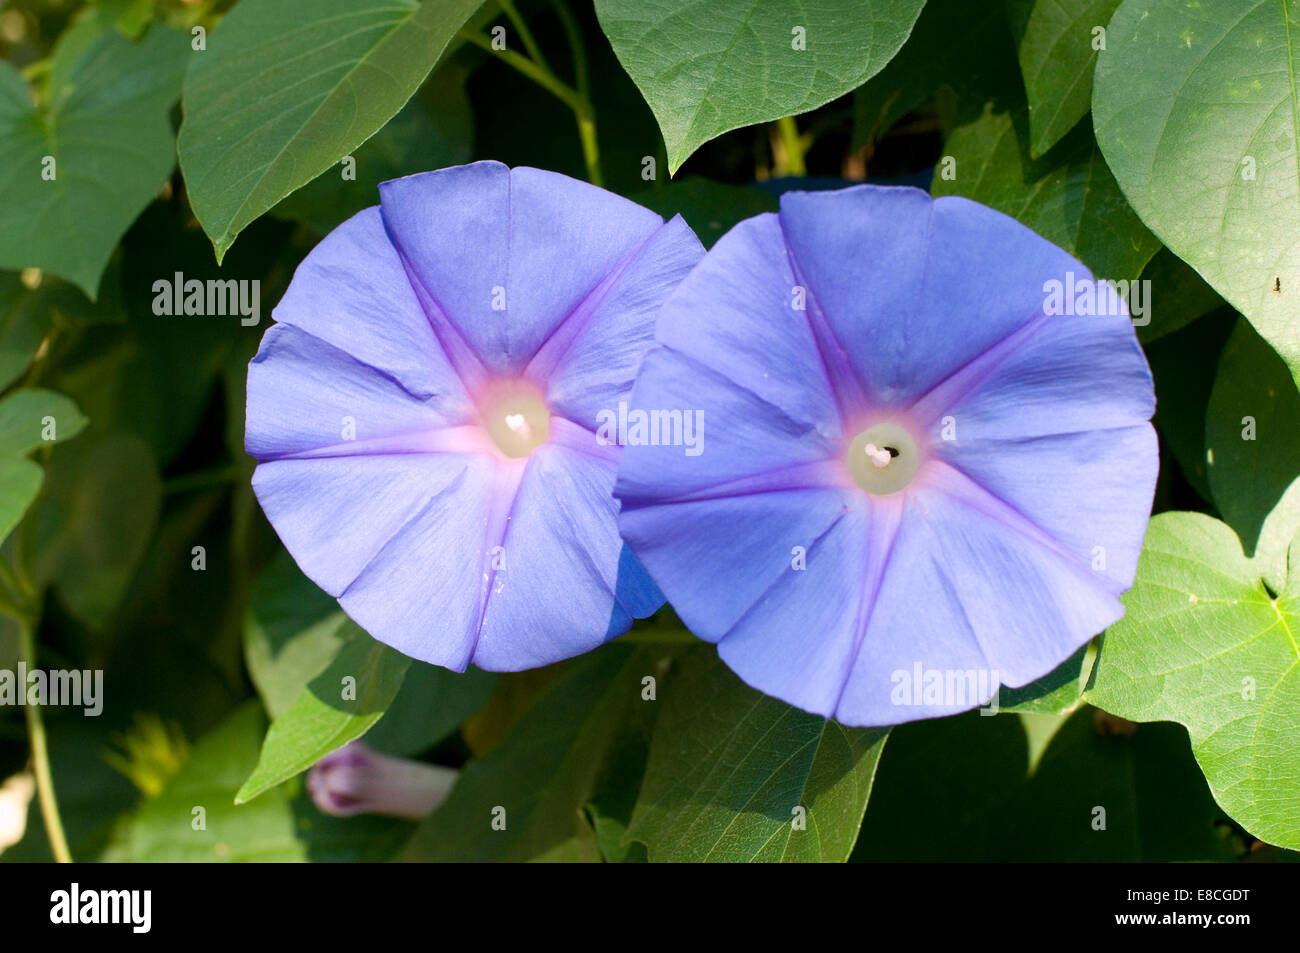 Convolvulus arvensis (field bindweed) bindweed in the morning glory family (Convolvulaceae), native to Europe and - Stock Image